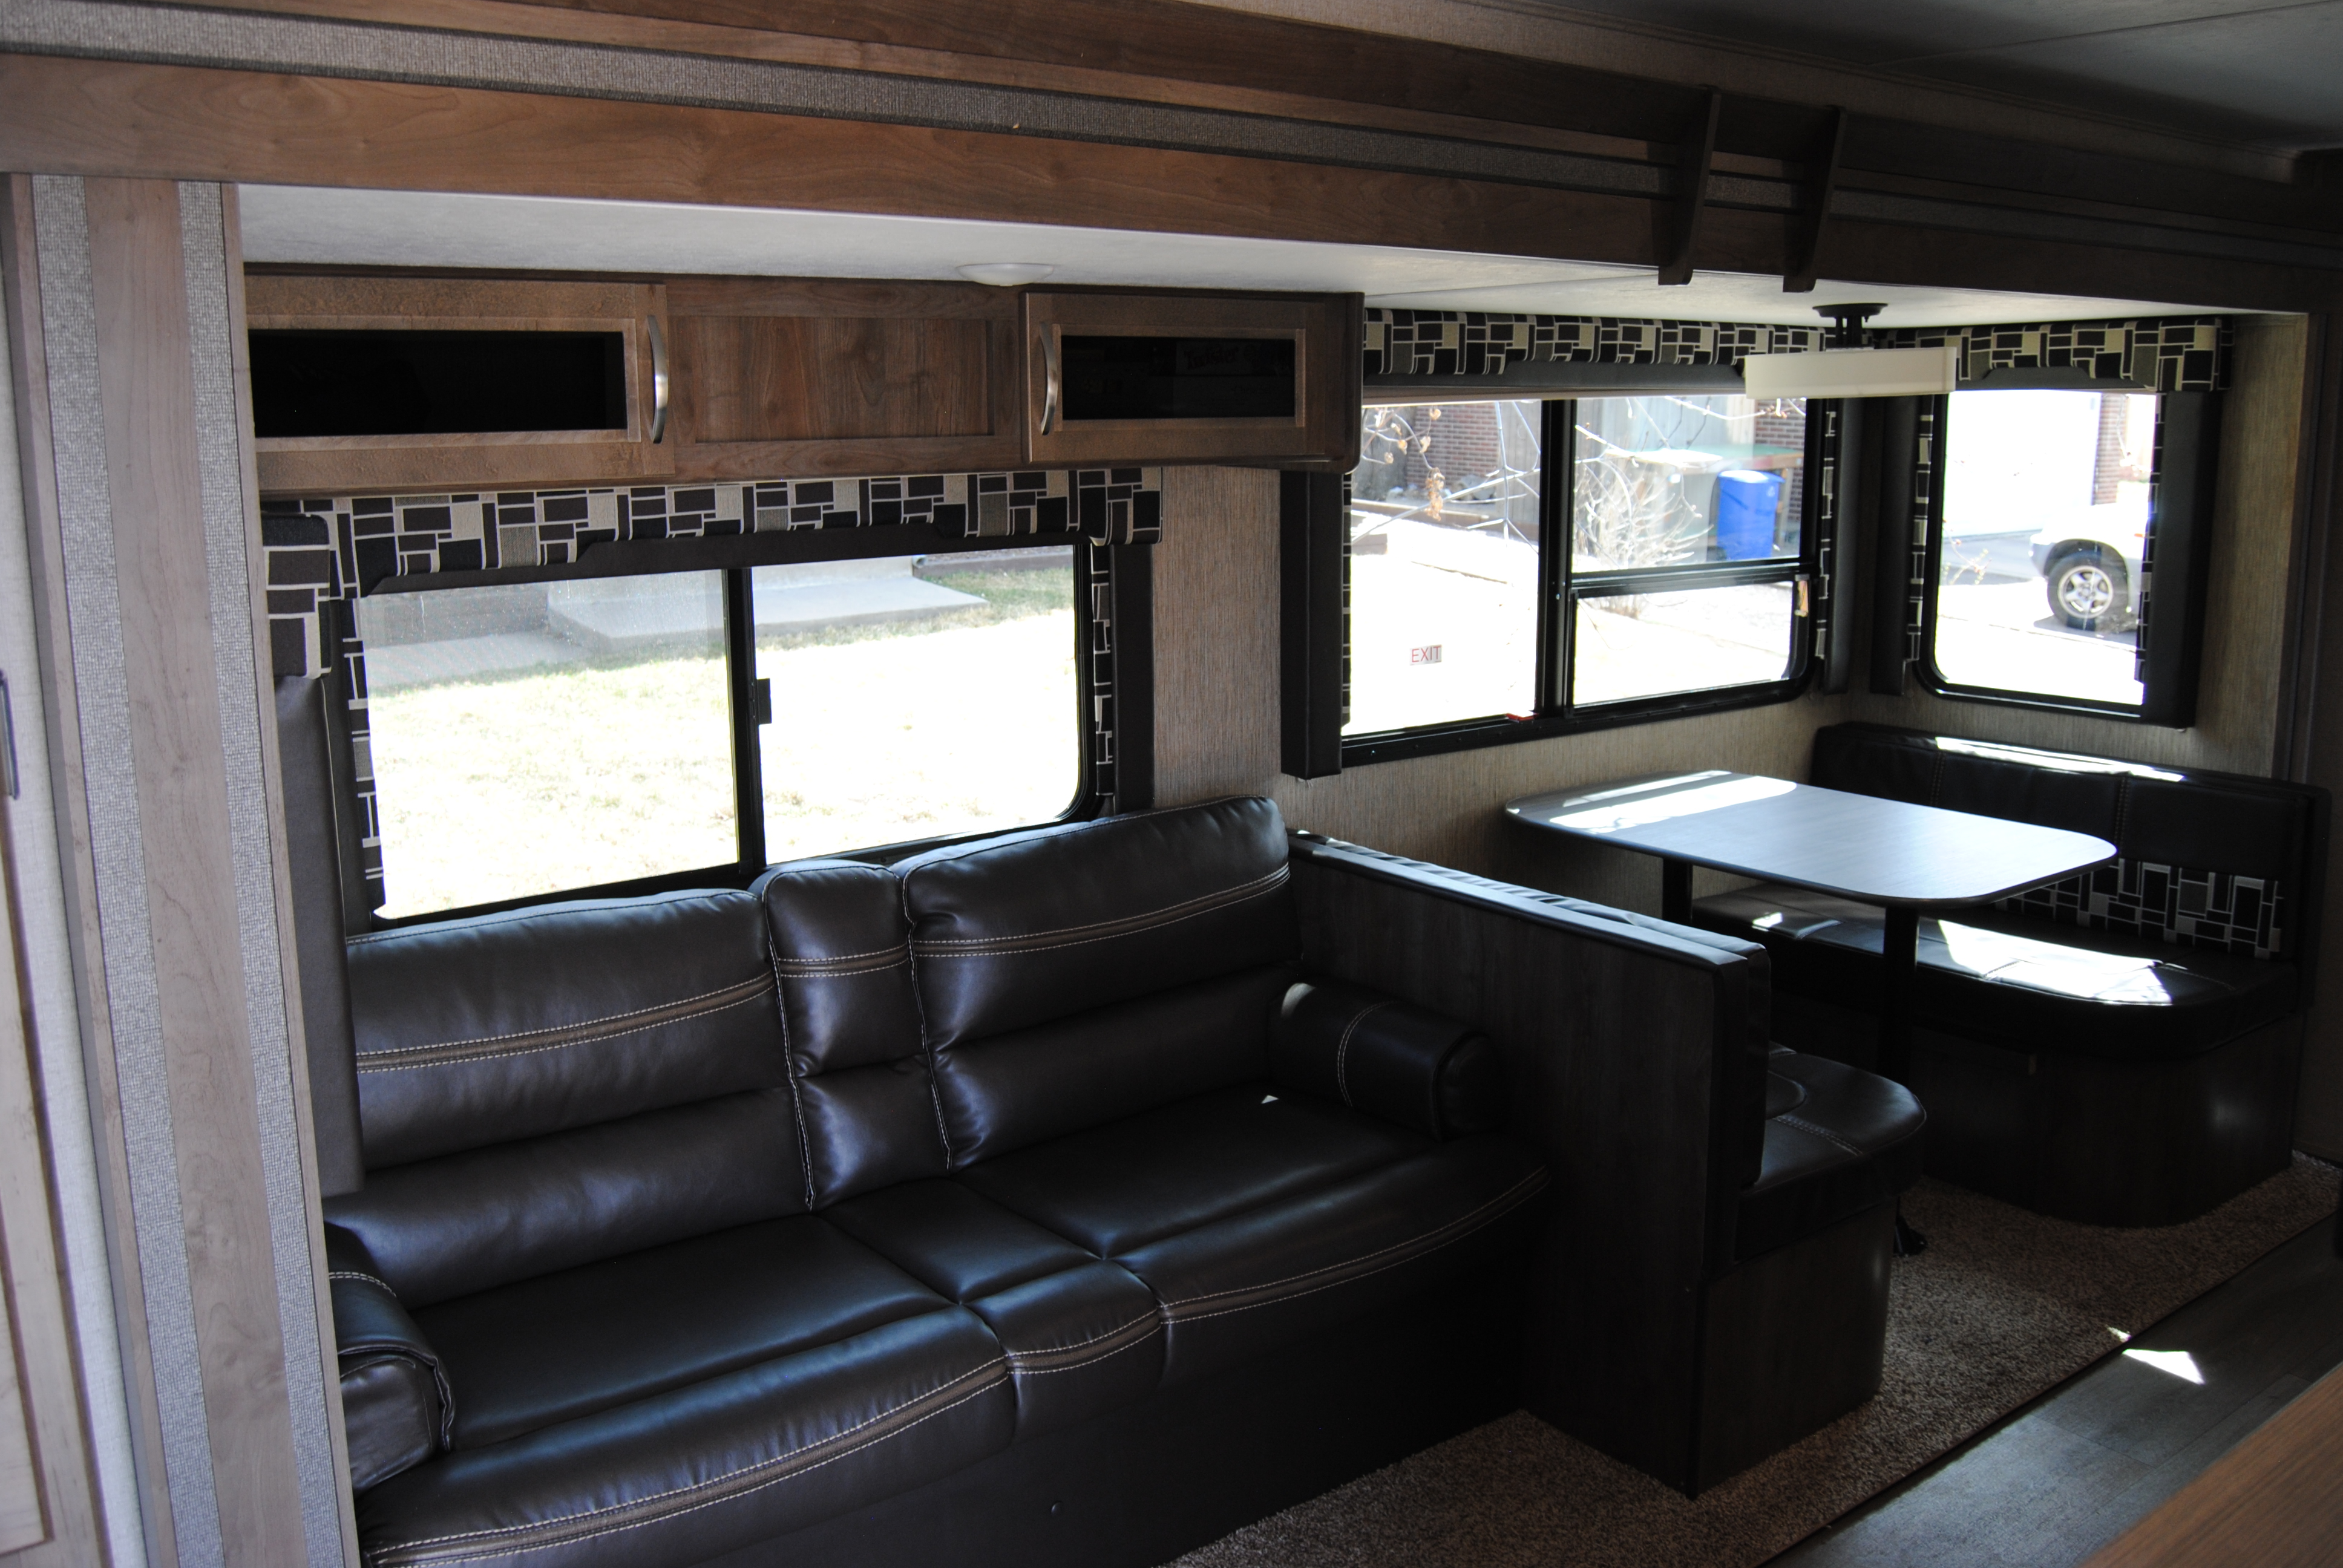 Couch and Dinette both convert to beds